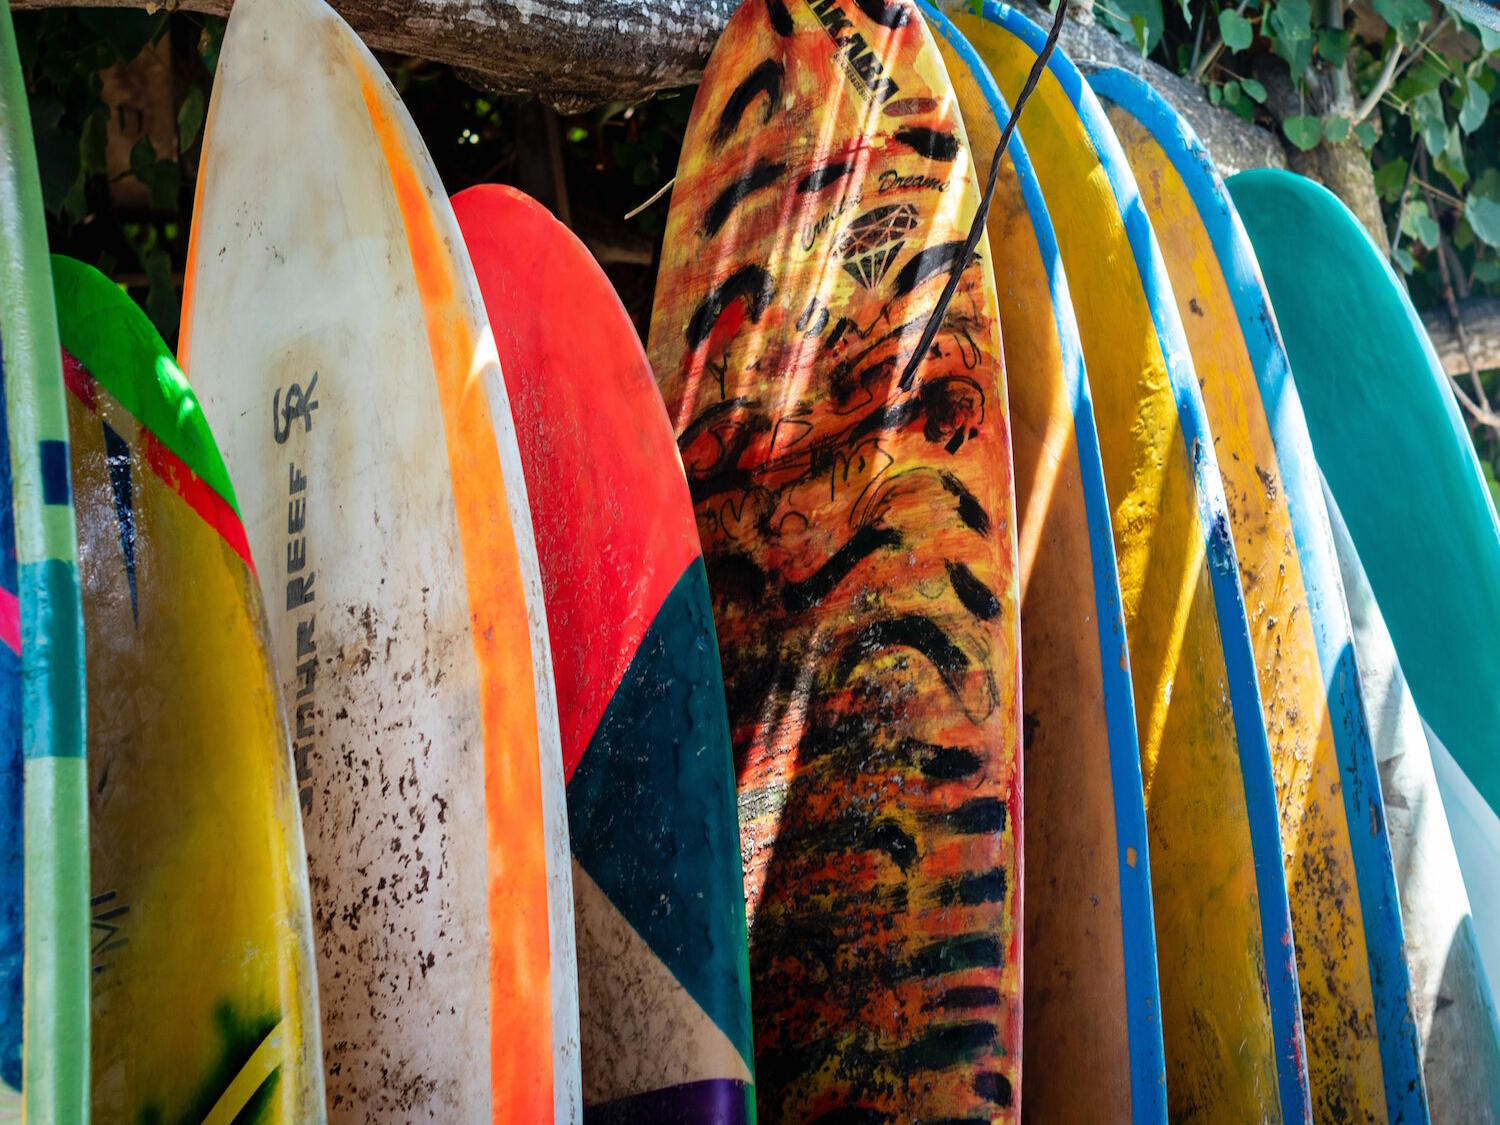 surfboards lined up